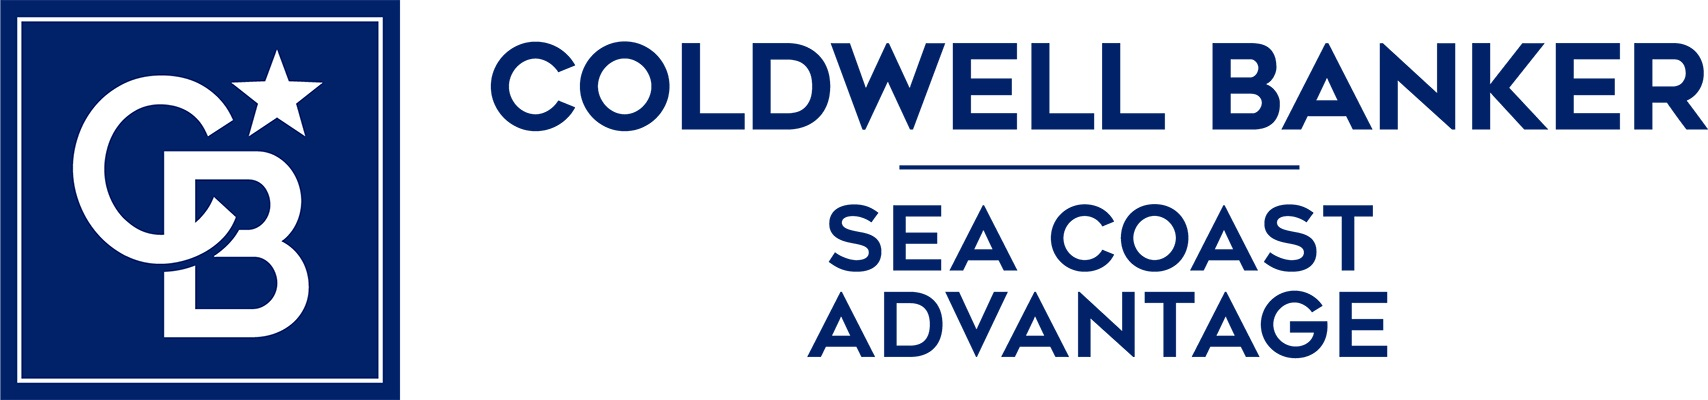 Tracy Maurer - Coldwell Banker Sea Coast Advantage Realty Logo